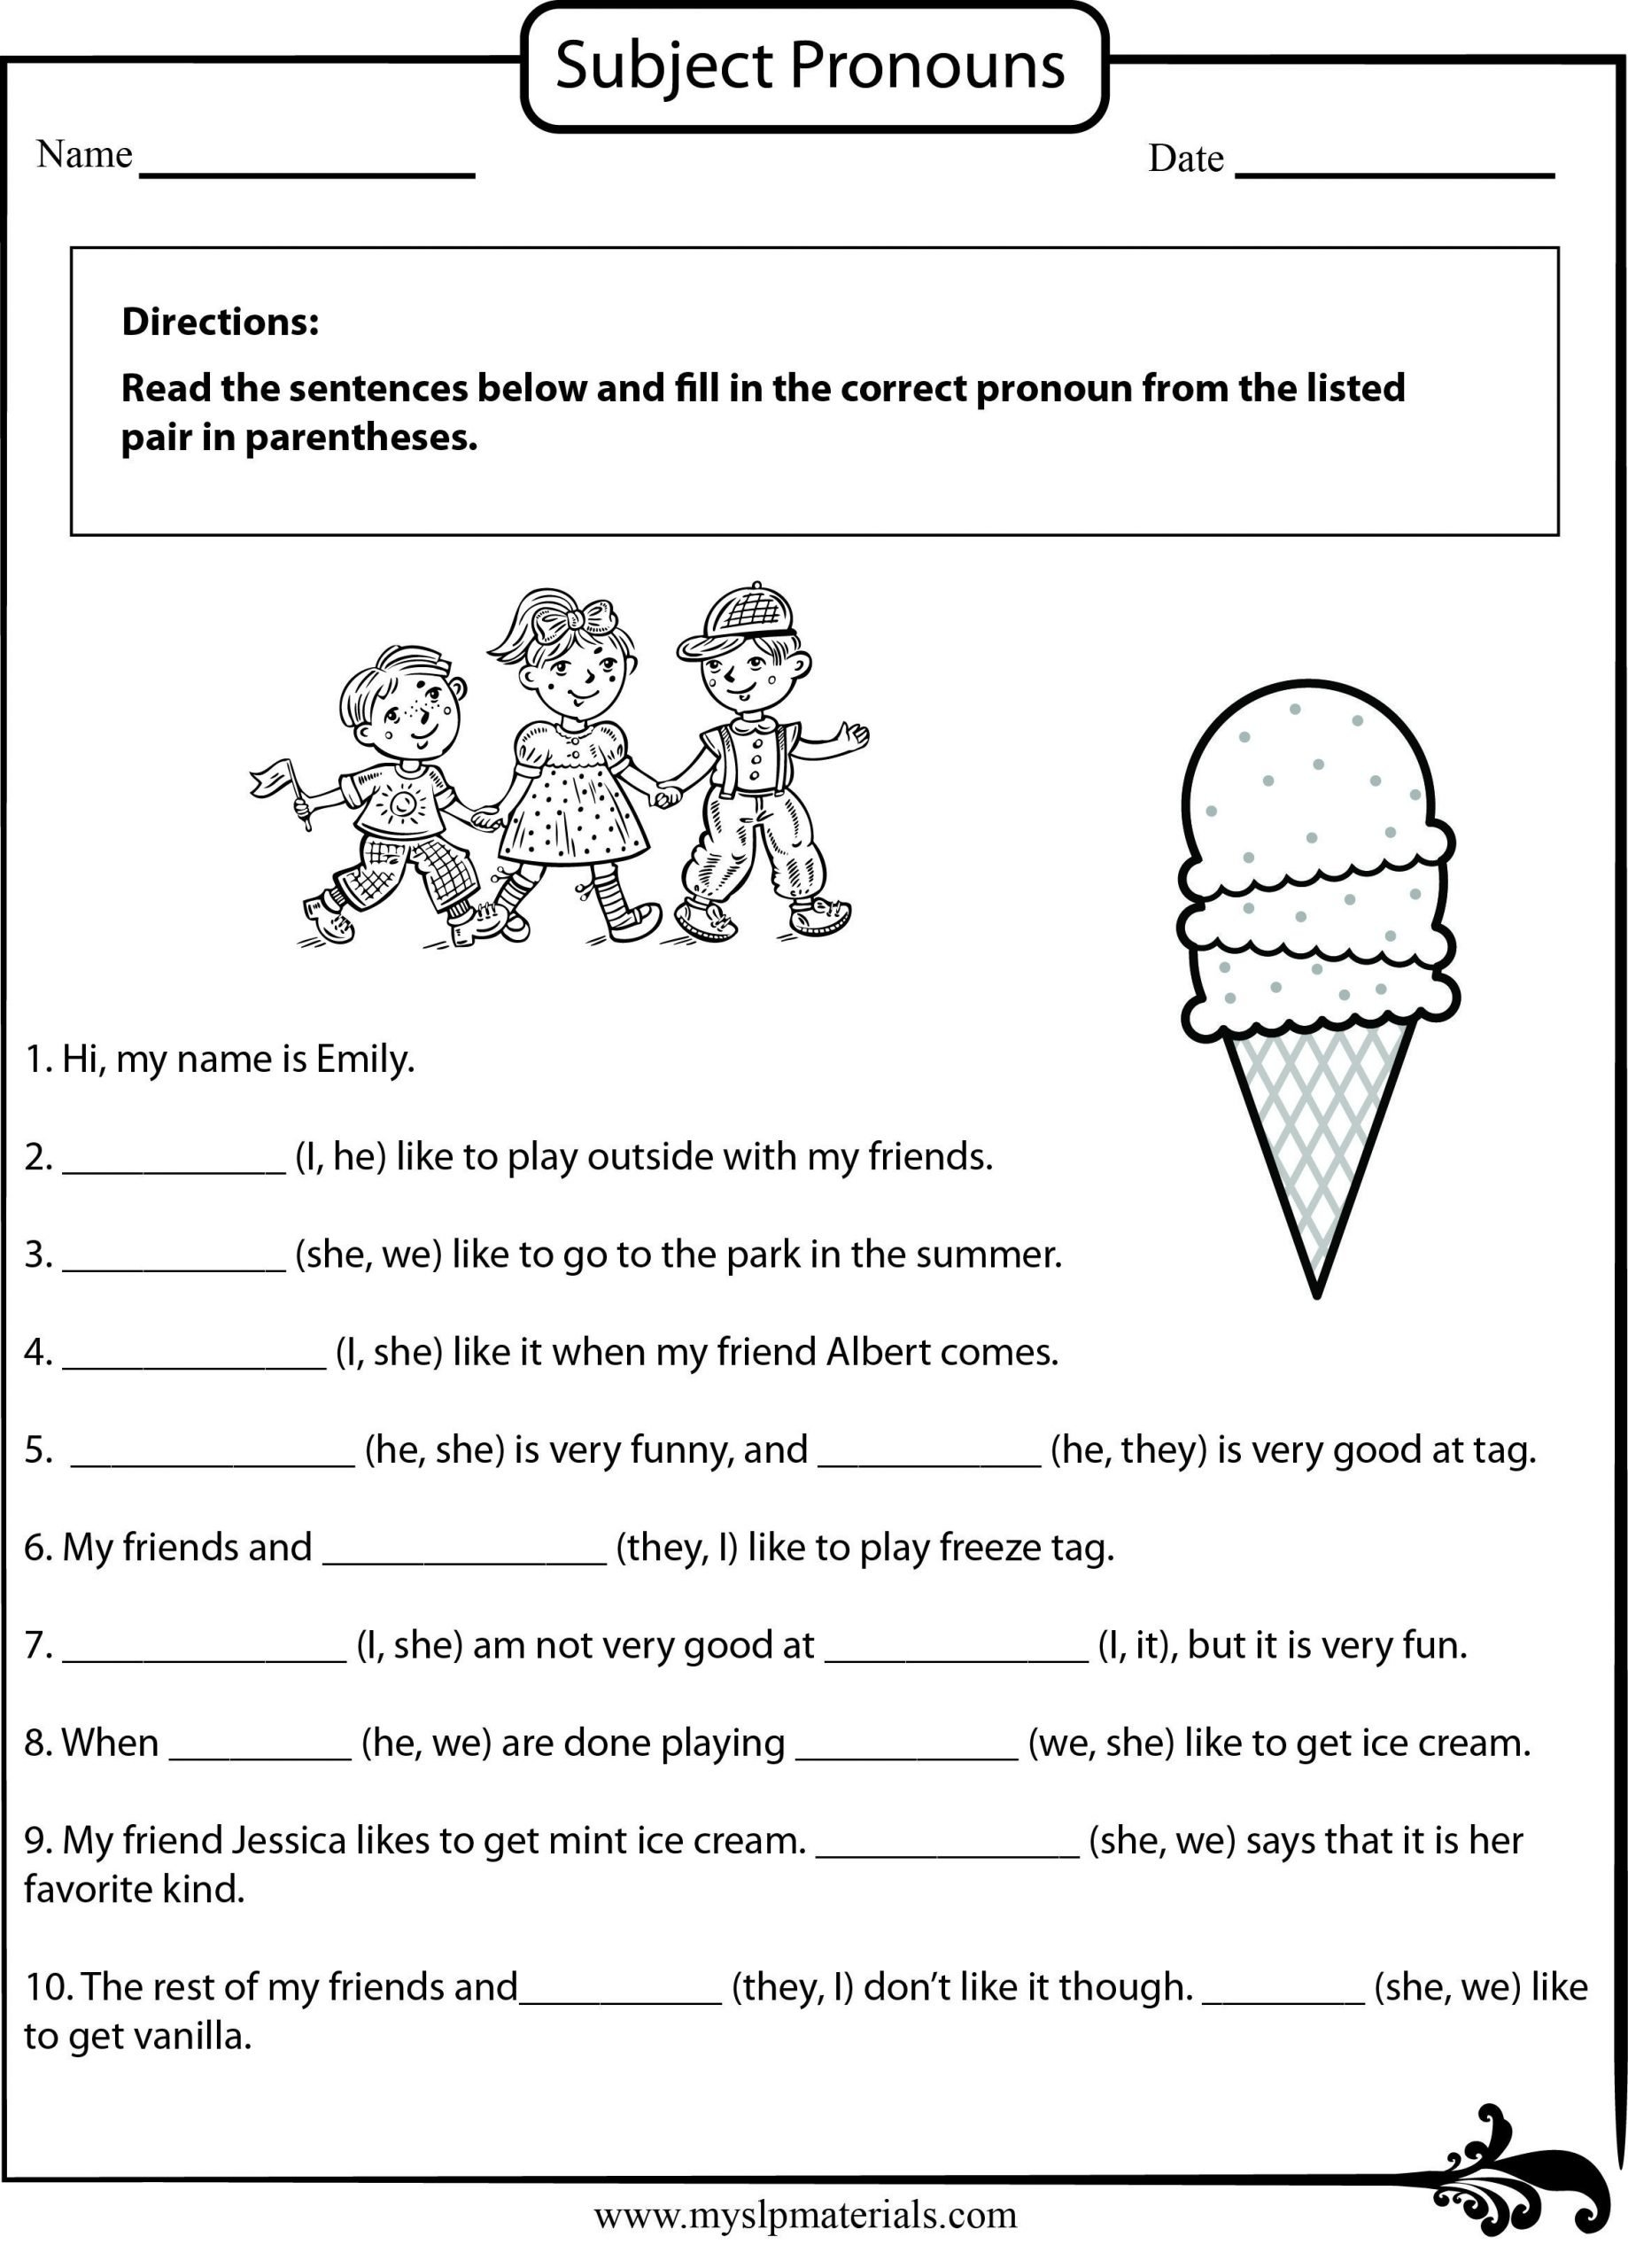 Pronoun Worksheet for 2nd Grade Subject Pronoun Speech